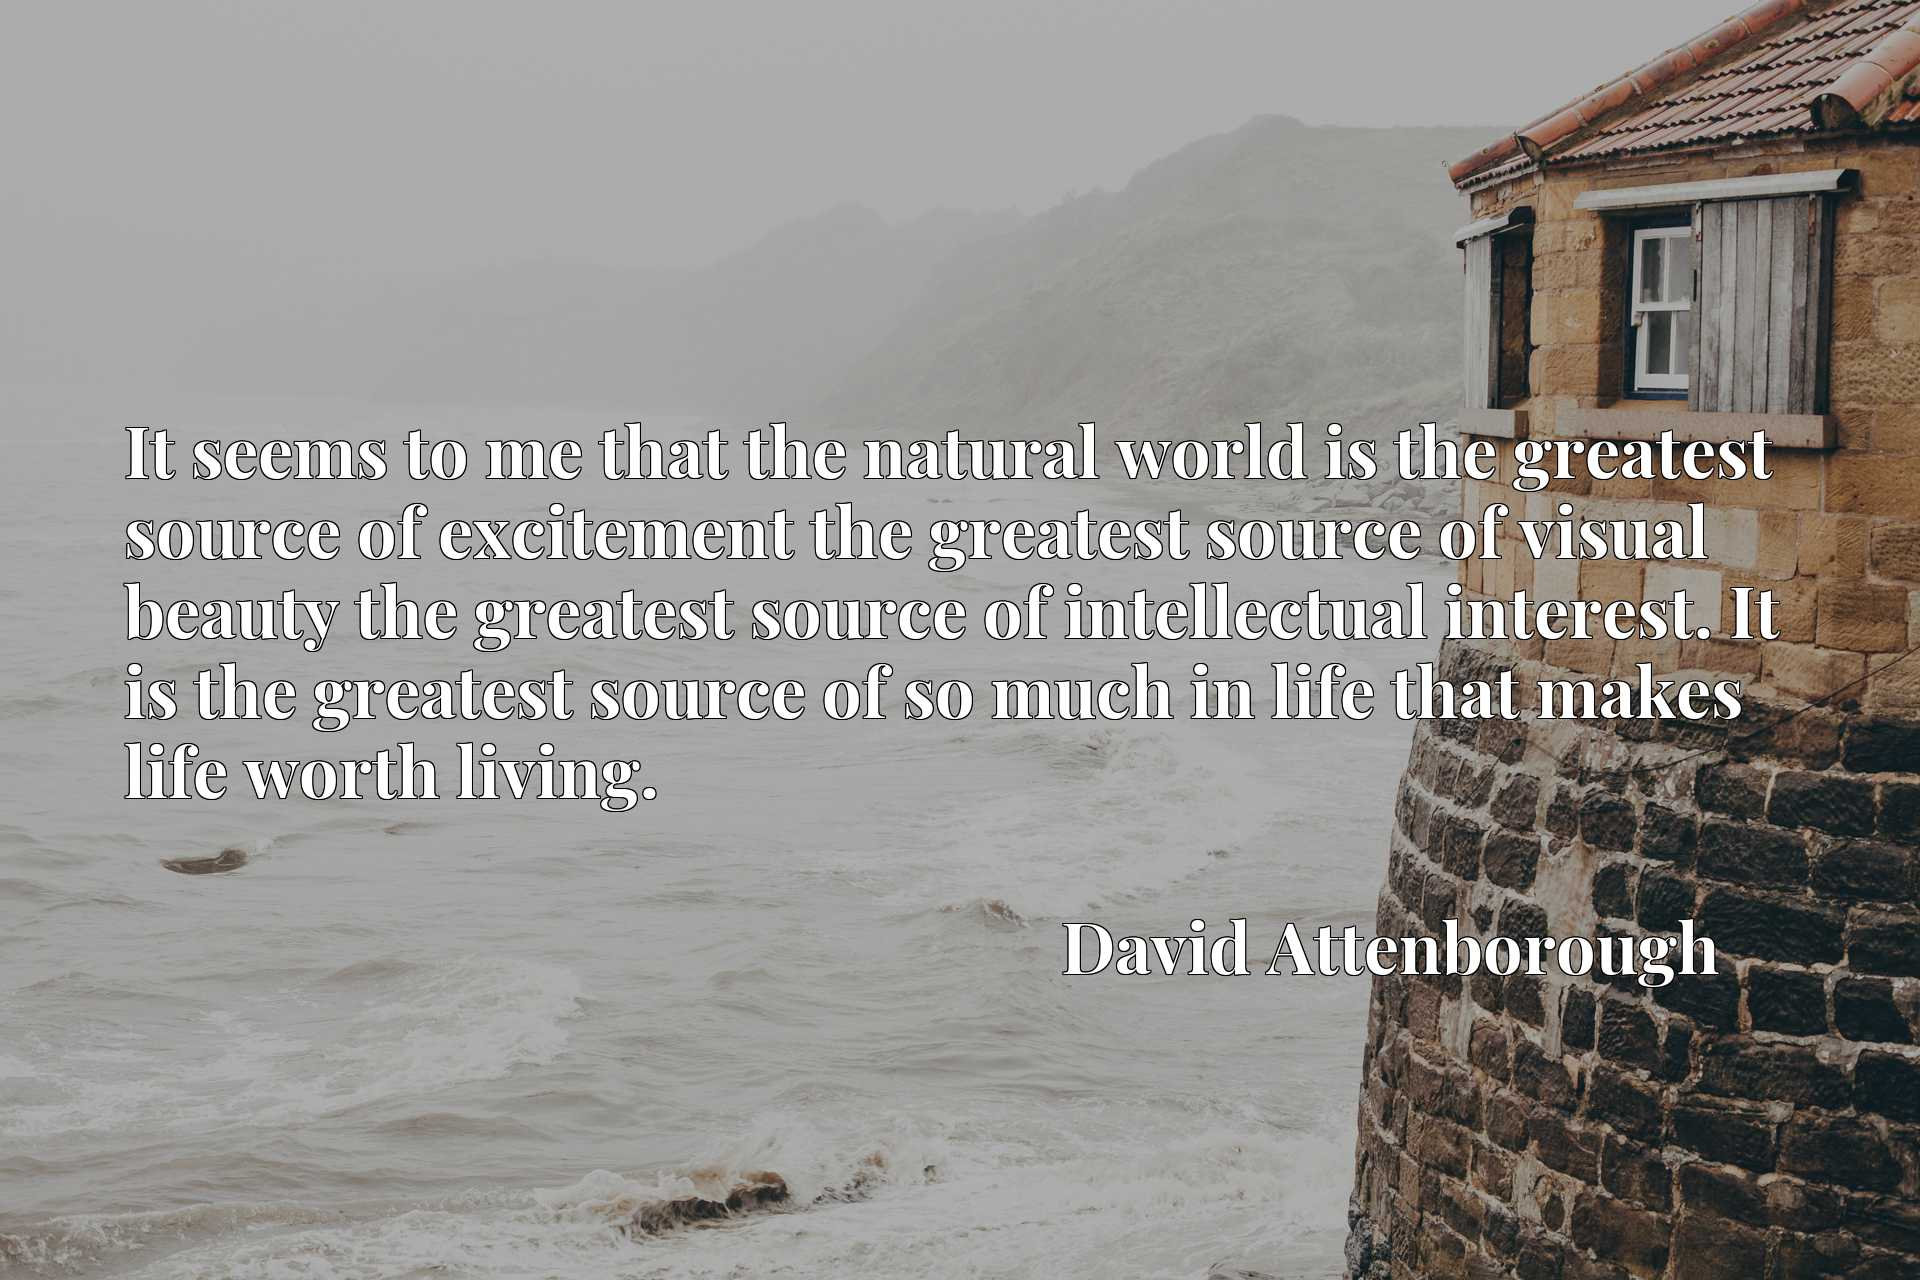 It seems to me that the natural world is the greatest source of excitement the greatest source of visual beauty the greatest source of intellectual interest. It is the greatest source of so much in life that makes life worth living.